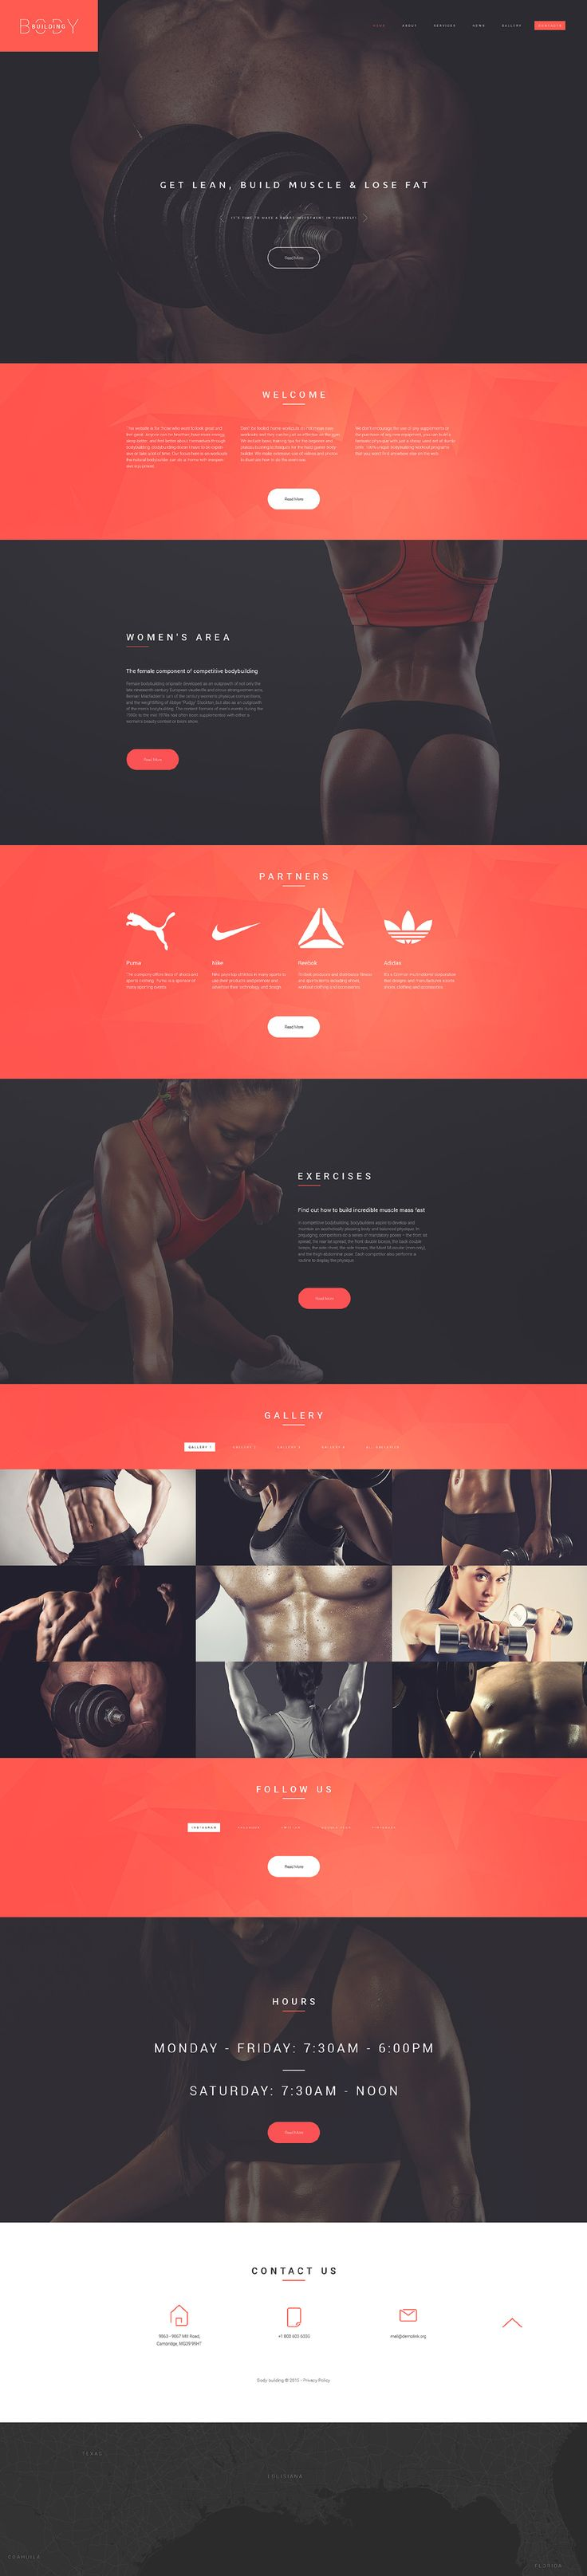 Bodybuilders' Club Website Template  http://www.templatemonster.com/website-templates/55451.html?utm_source=pinterest&utm_medium=timeline&utm_campaign=55451